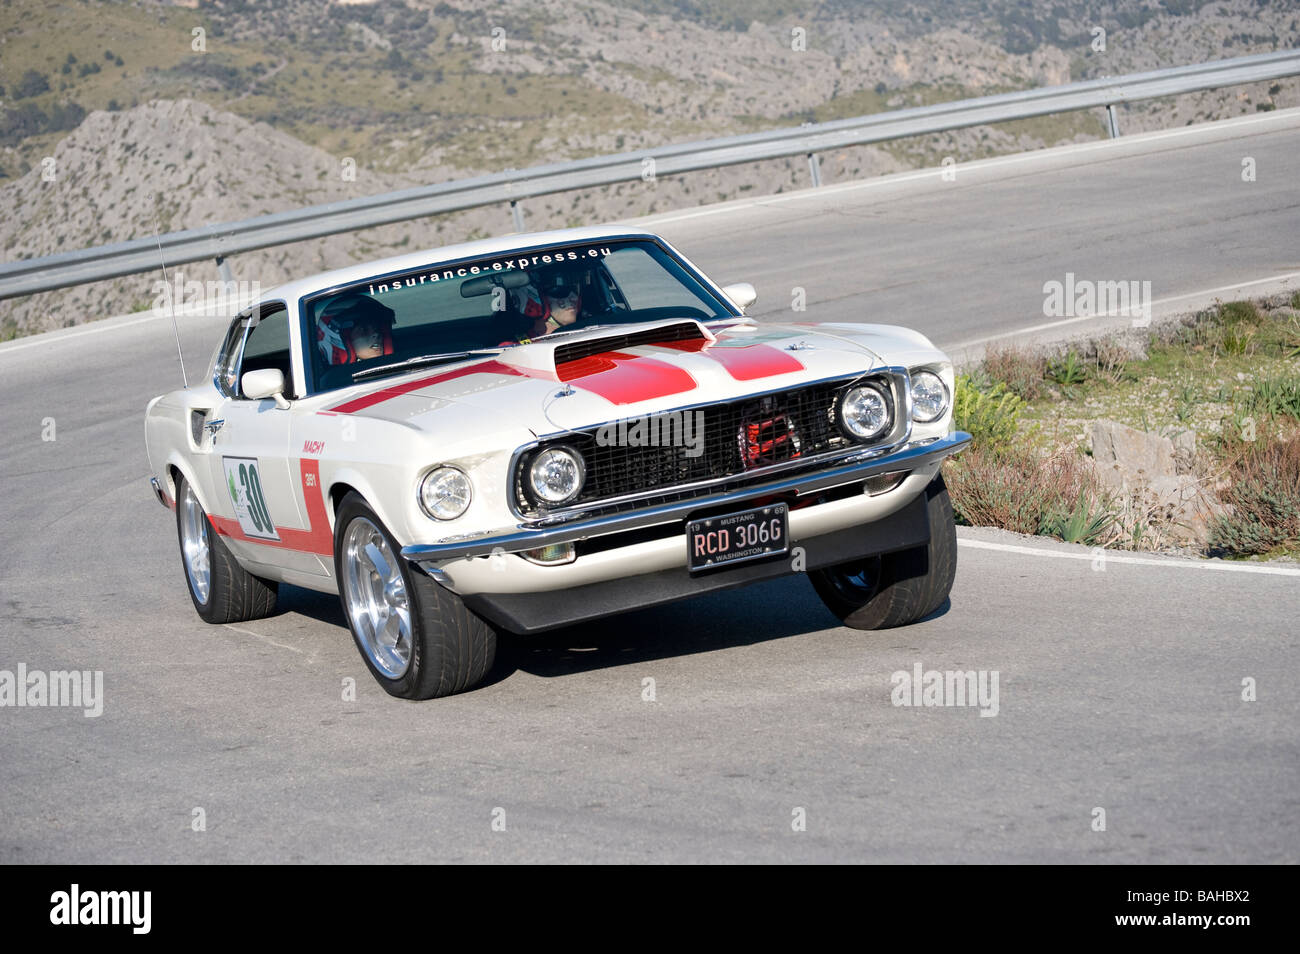 1969 White Ford Mustang classic sports car racing in the Mallorca classic car rally - Stock Image